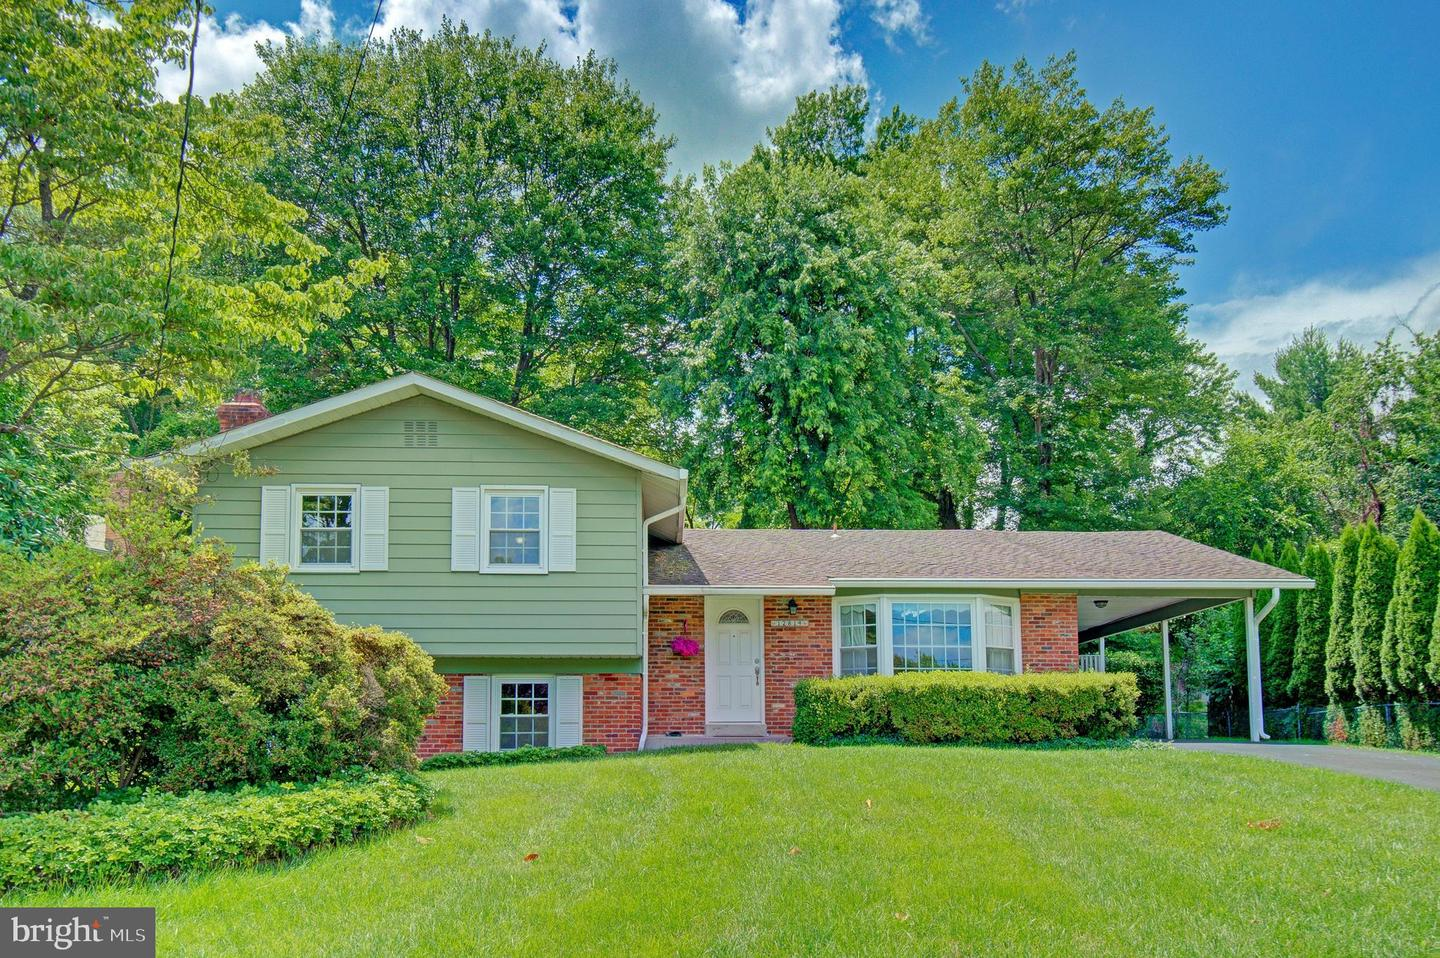 12814 BLUET LANE, SILVER SPRING, Maryland